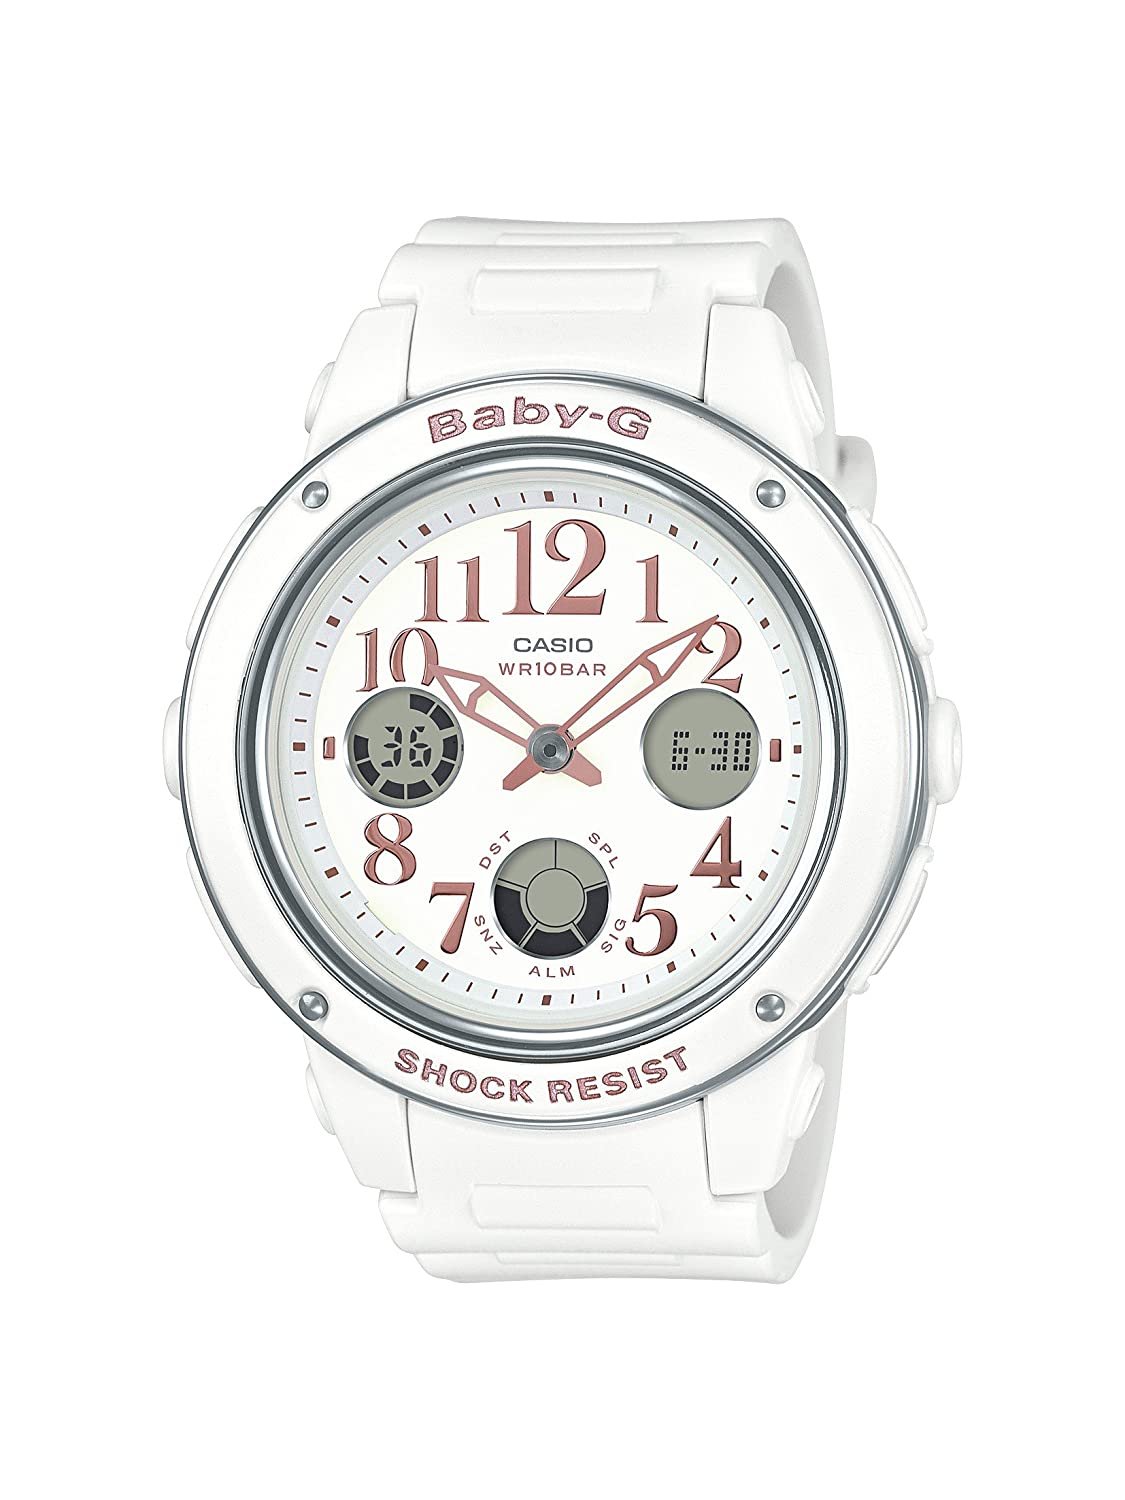 5e9928580999 Amazon.com  Casio Women s BGA150EF-7B Baby-G White Watch  Casio  Watches